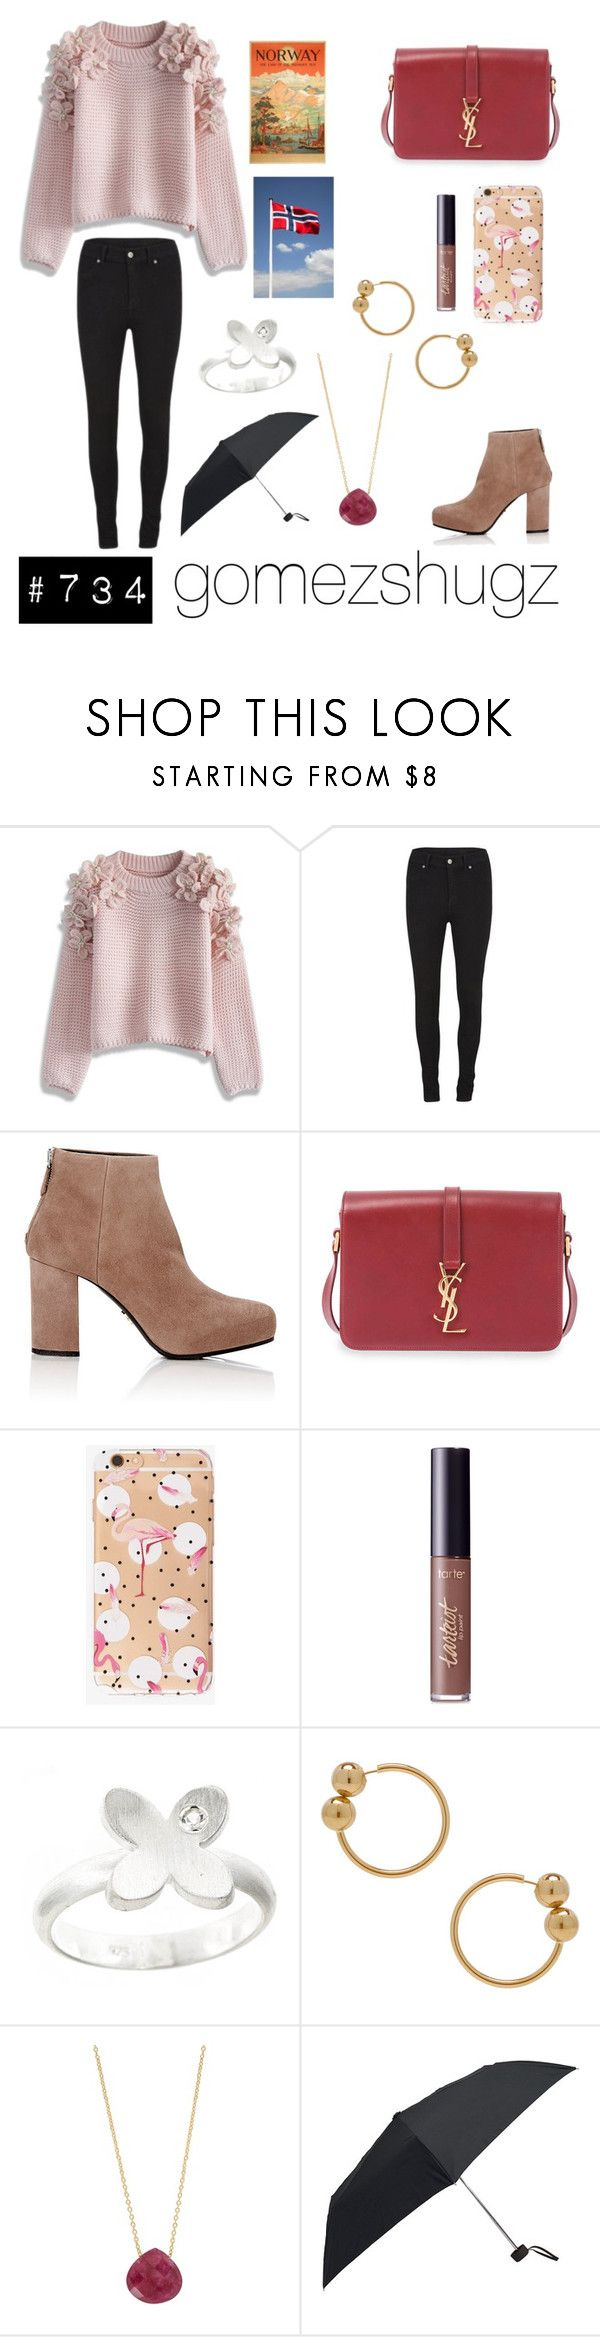 """""""black, rose, pink, nude, silver"""" by gomezshugz ❤ liked on Polyvore featuring Chicwish, Cheap Monday, Prada, Yves Saint Laurent, tarte, Pineapple Seed, J.W. Anderson, Juvi and Eagle Creek"""